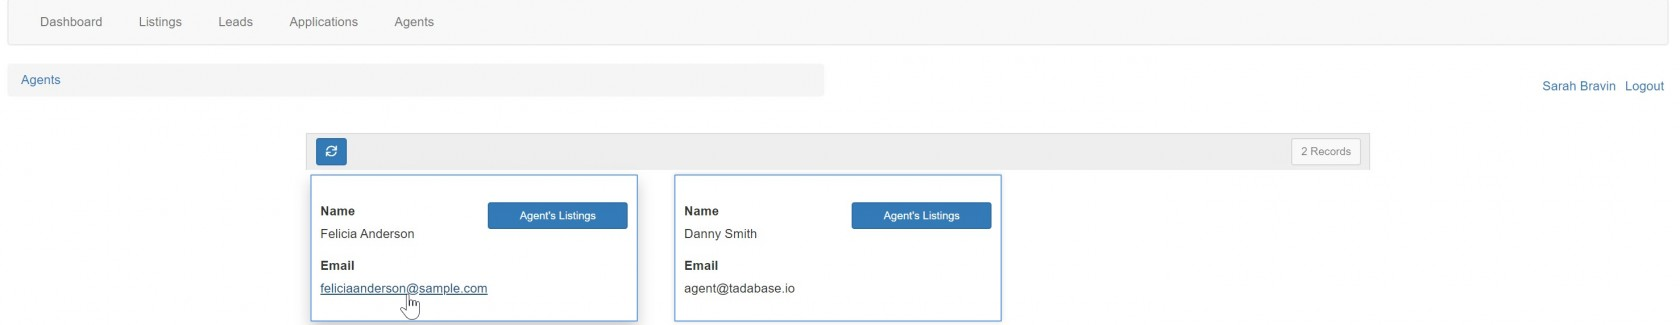 agent-email-link.jpg